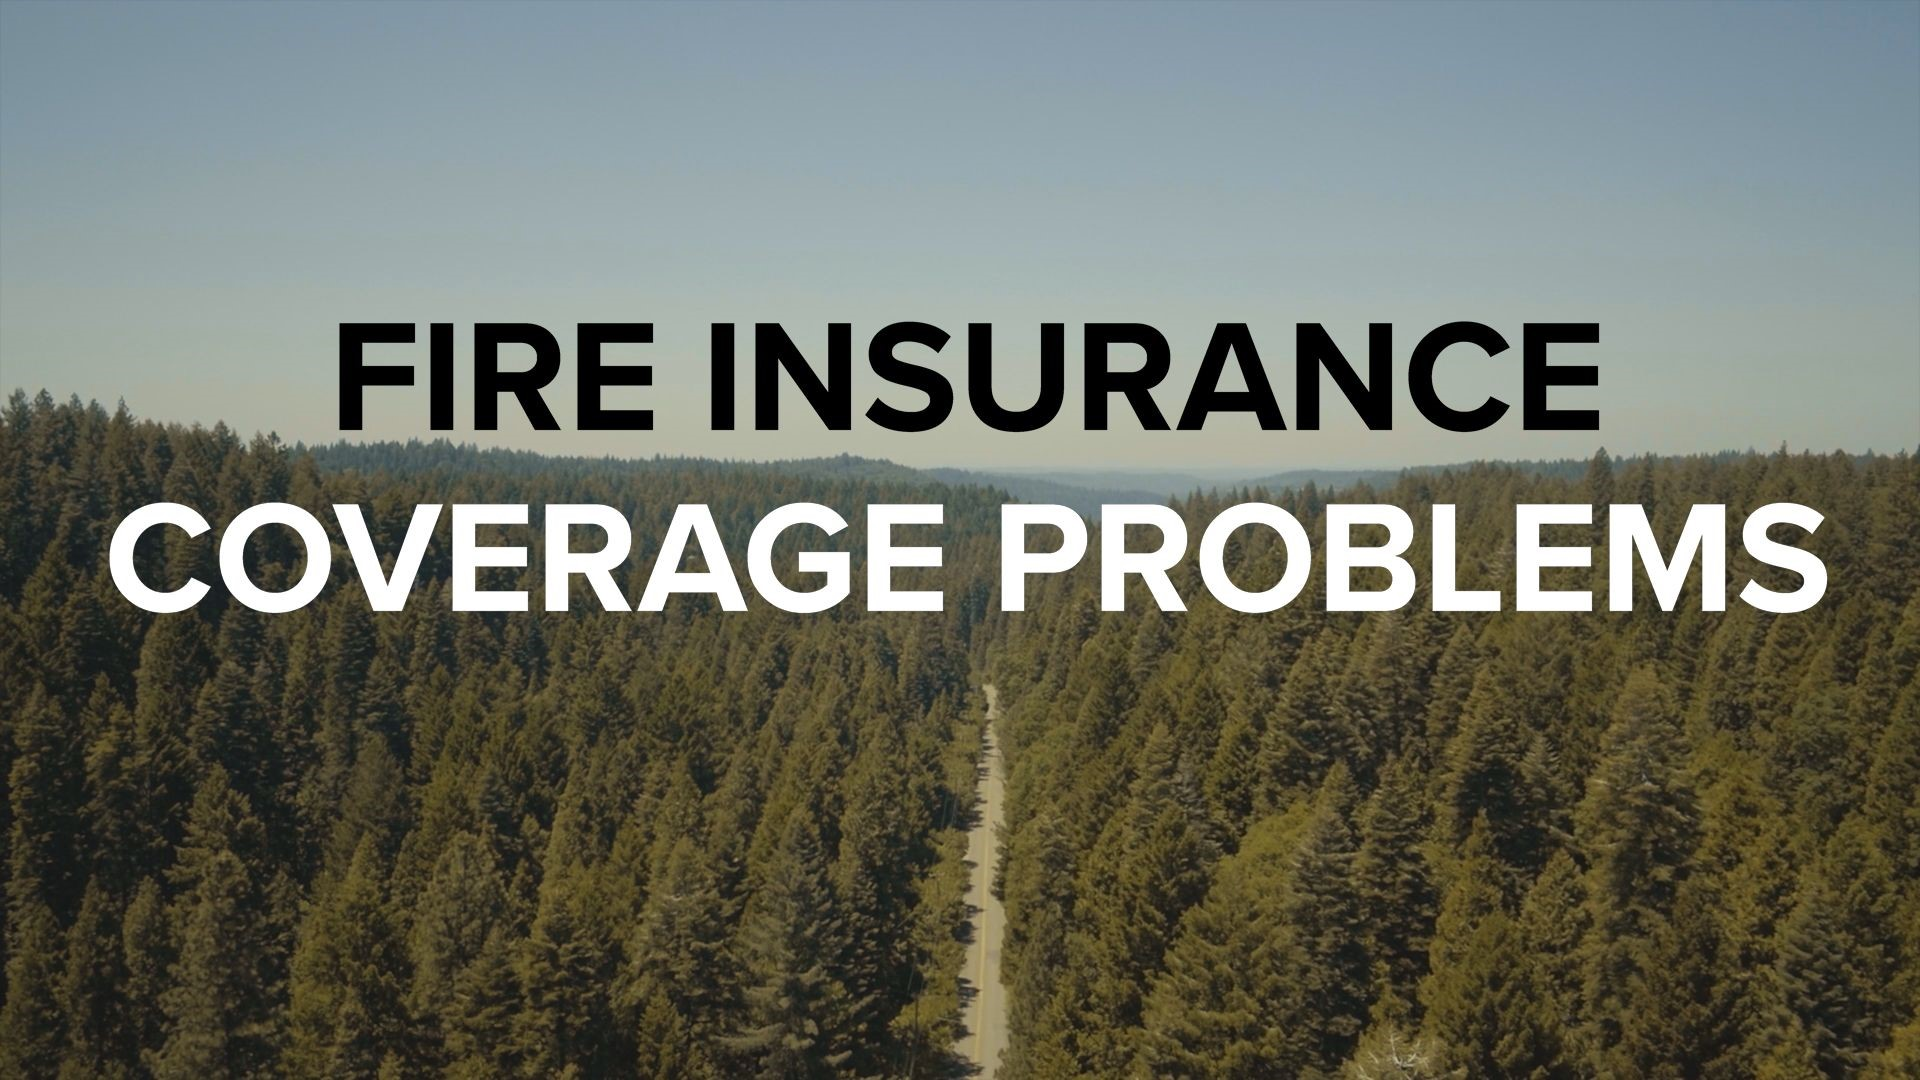 Homeowners In Fire Prone Areas Being Dropped By Insurance Firstcoastnews Com